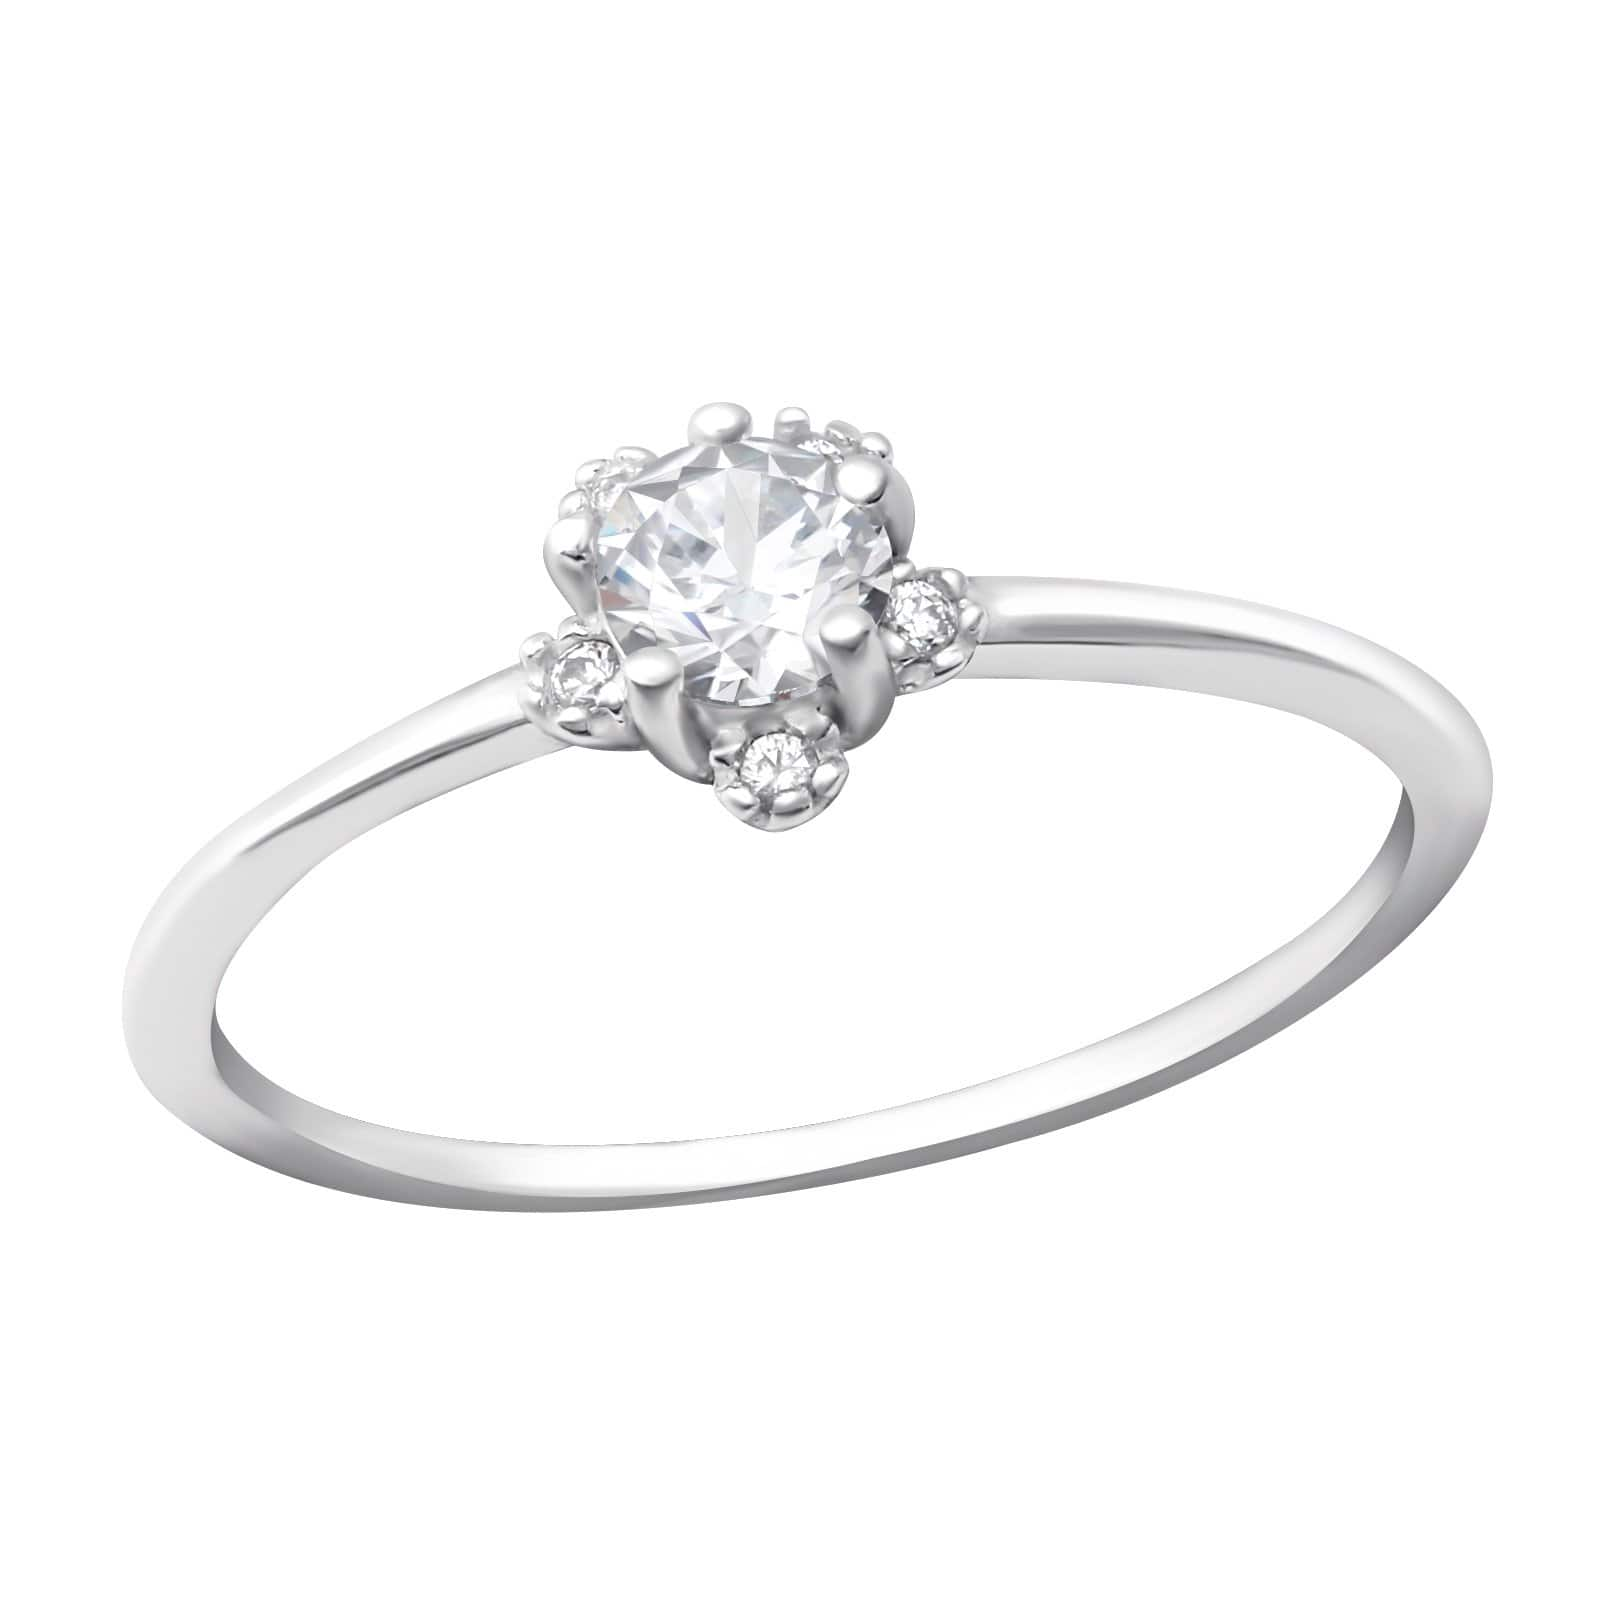 Solitaire Engagement Ring Australia